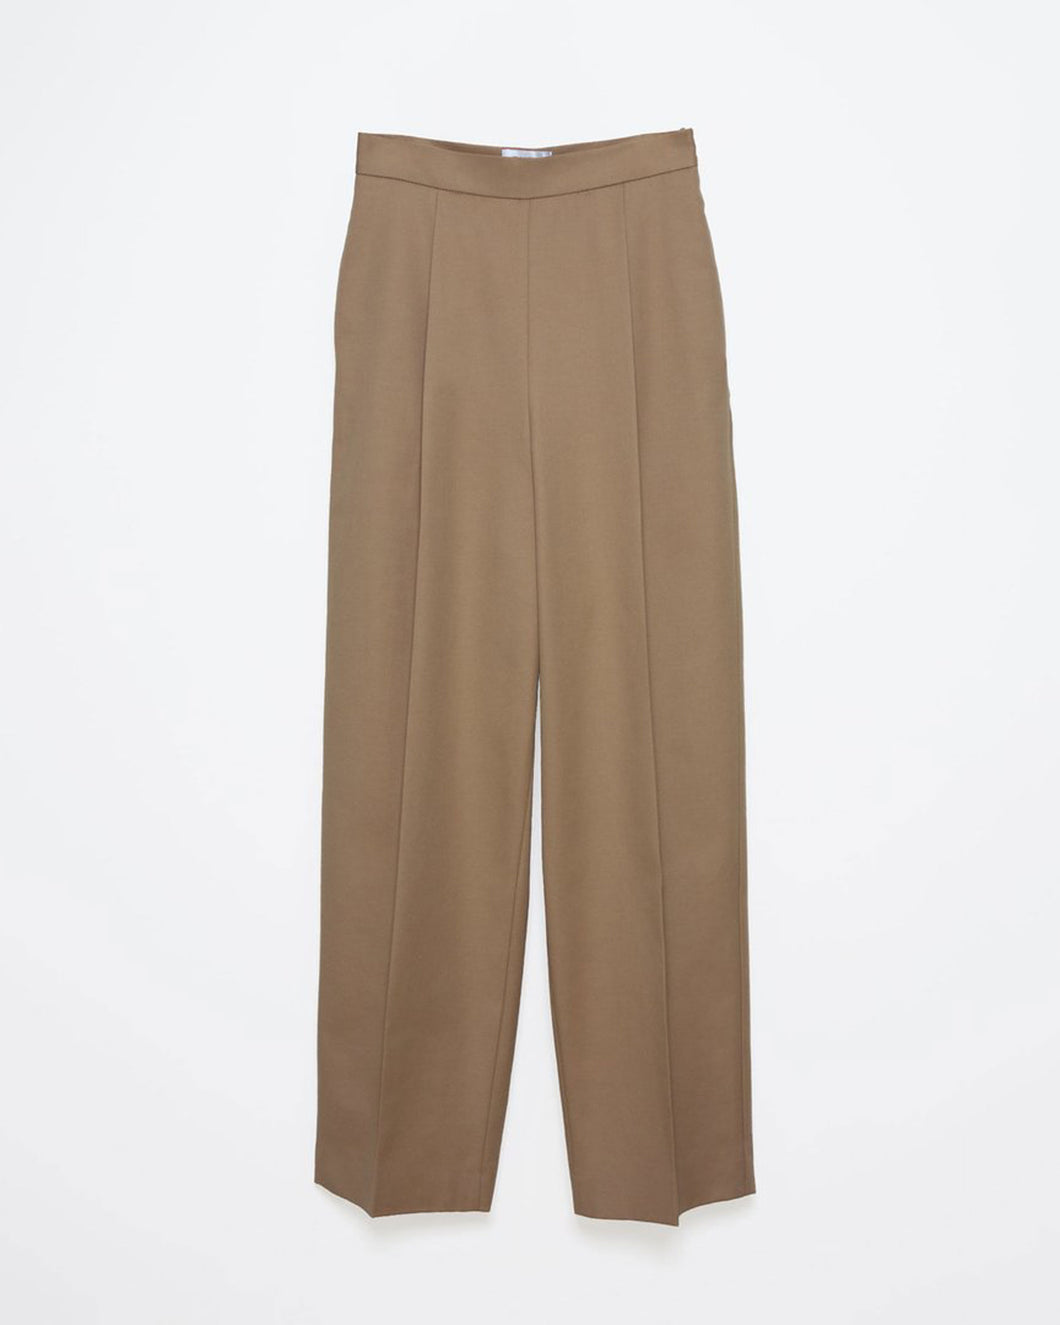 High Waist Camel Trouser